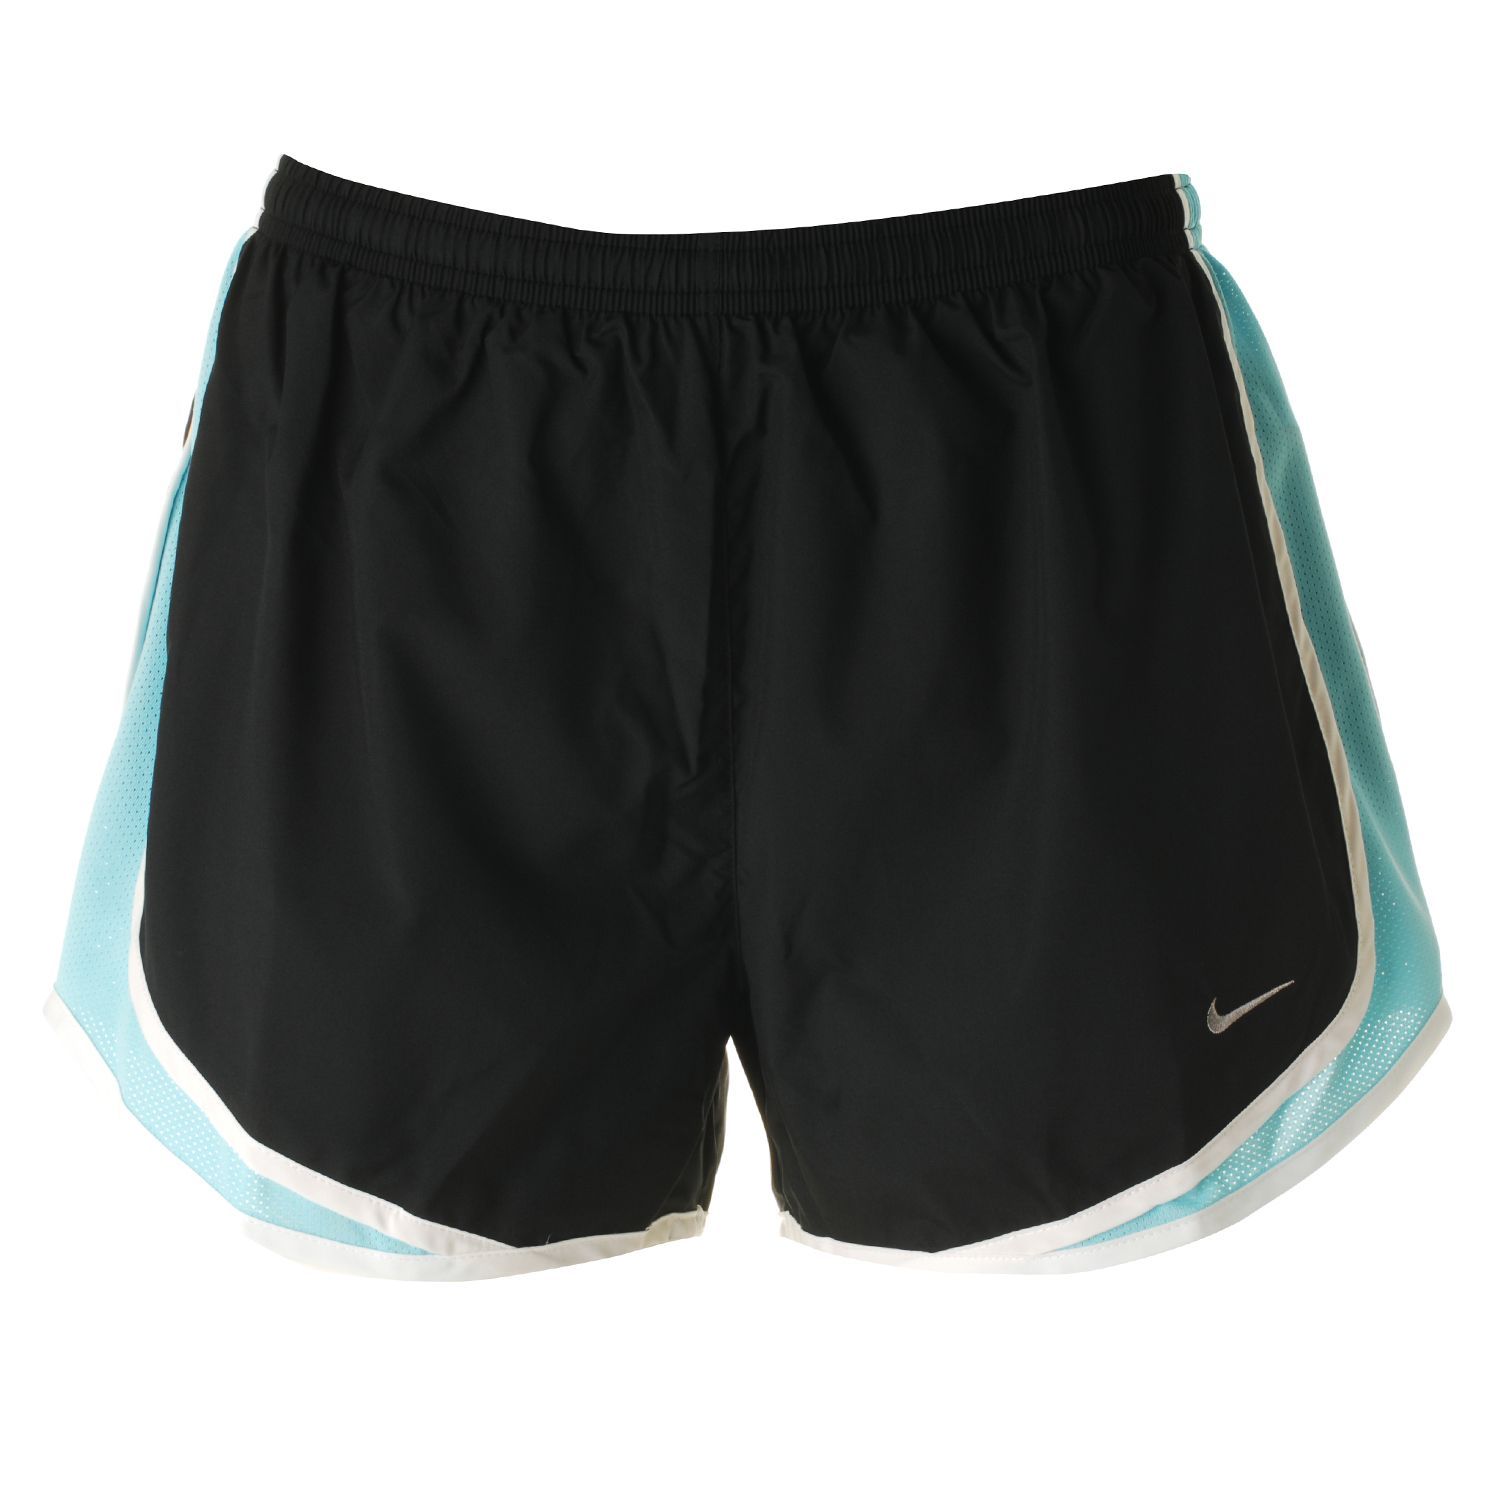 Nike-Tempo-Womens-Running-Shorts-with-Nike-Black-and-Blue